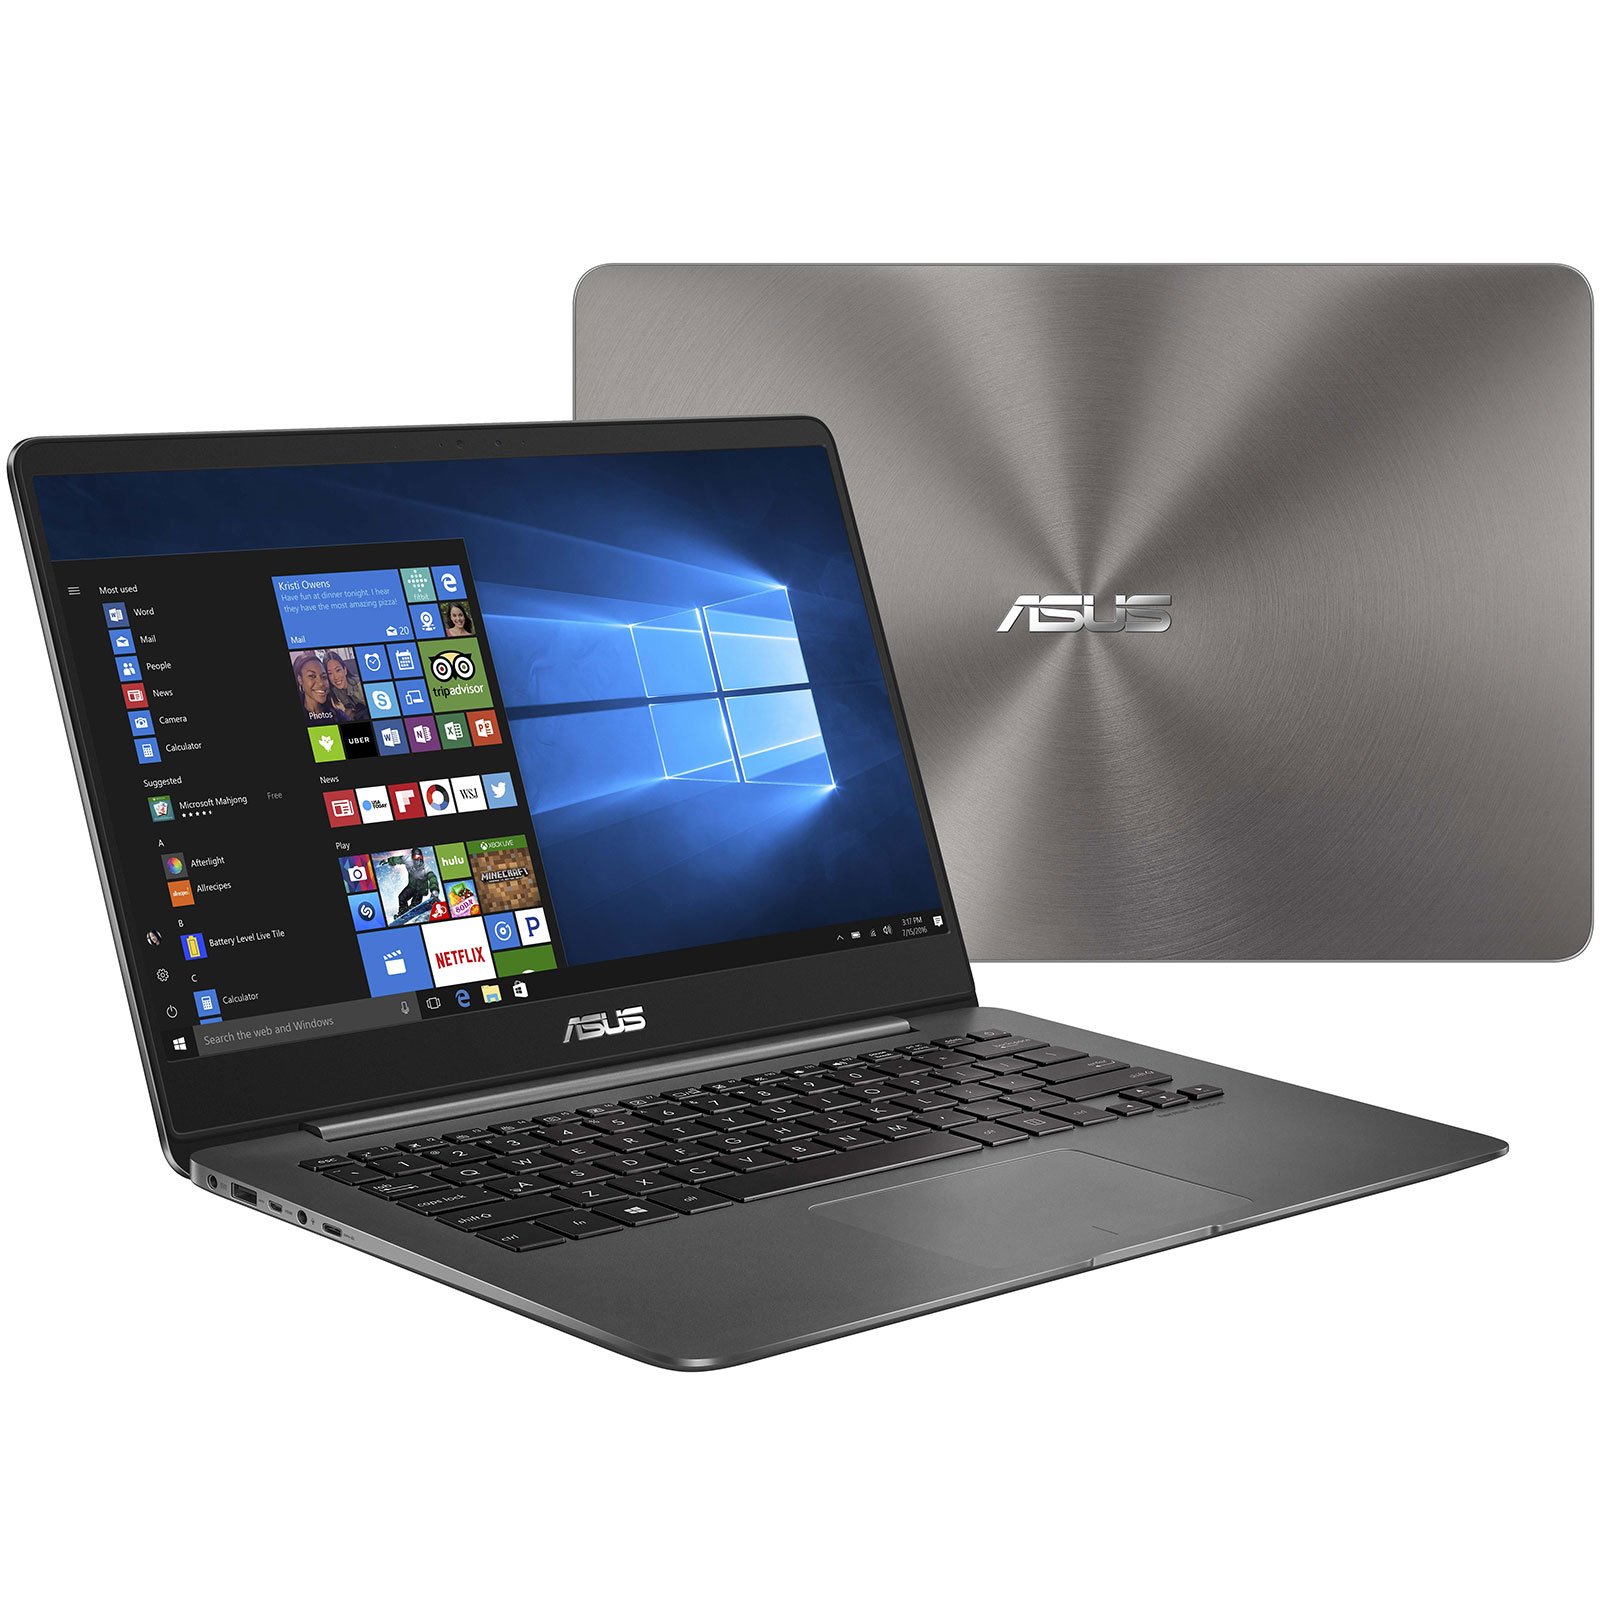 asus zenbook ux430ua gv046r ux430ua gv046r achat vente pc portable sur. Black Bedroom Furniture Sets. Home Design Ideas